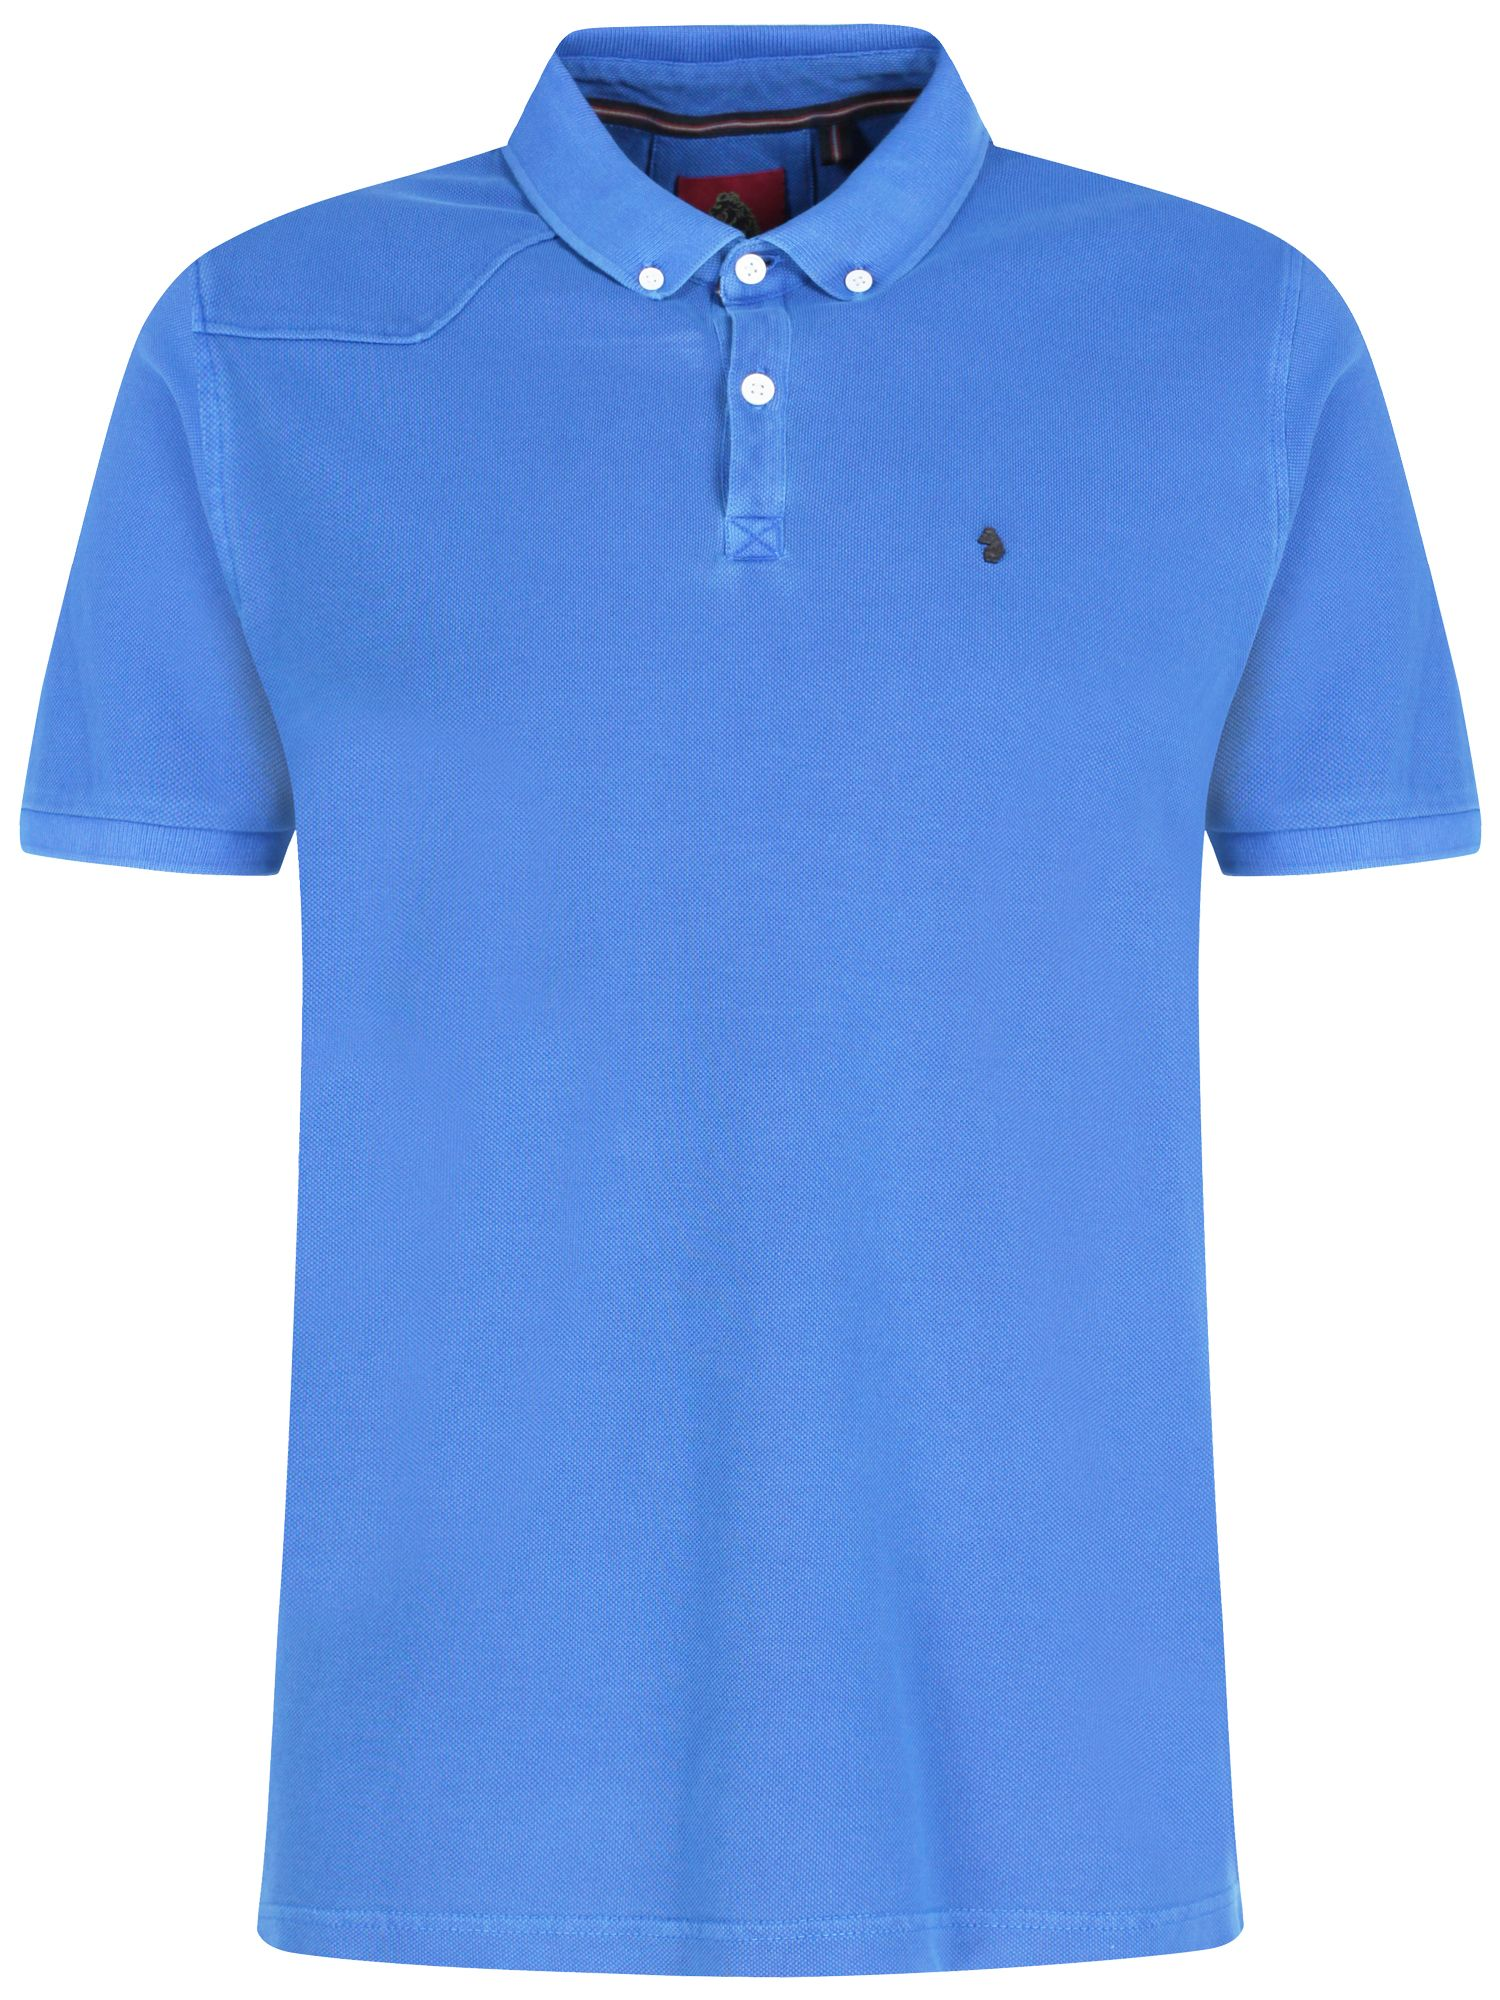 Men's Luke 1977 Billiam Polo Shirt, Sky Blue